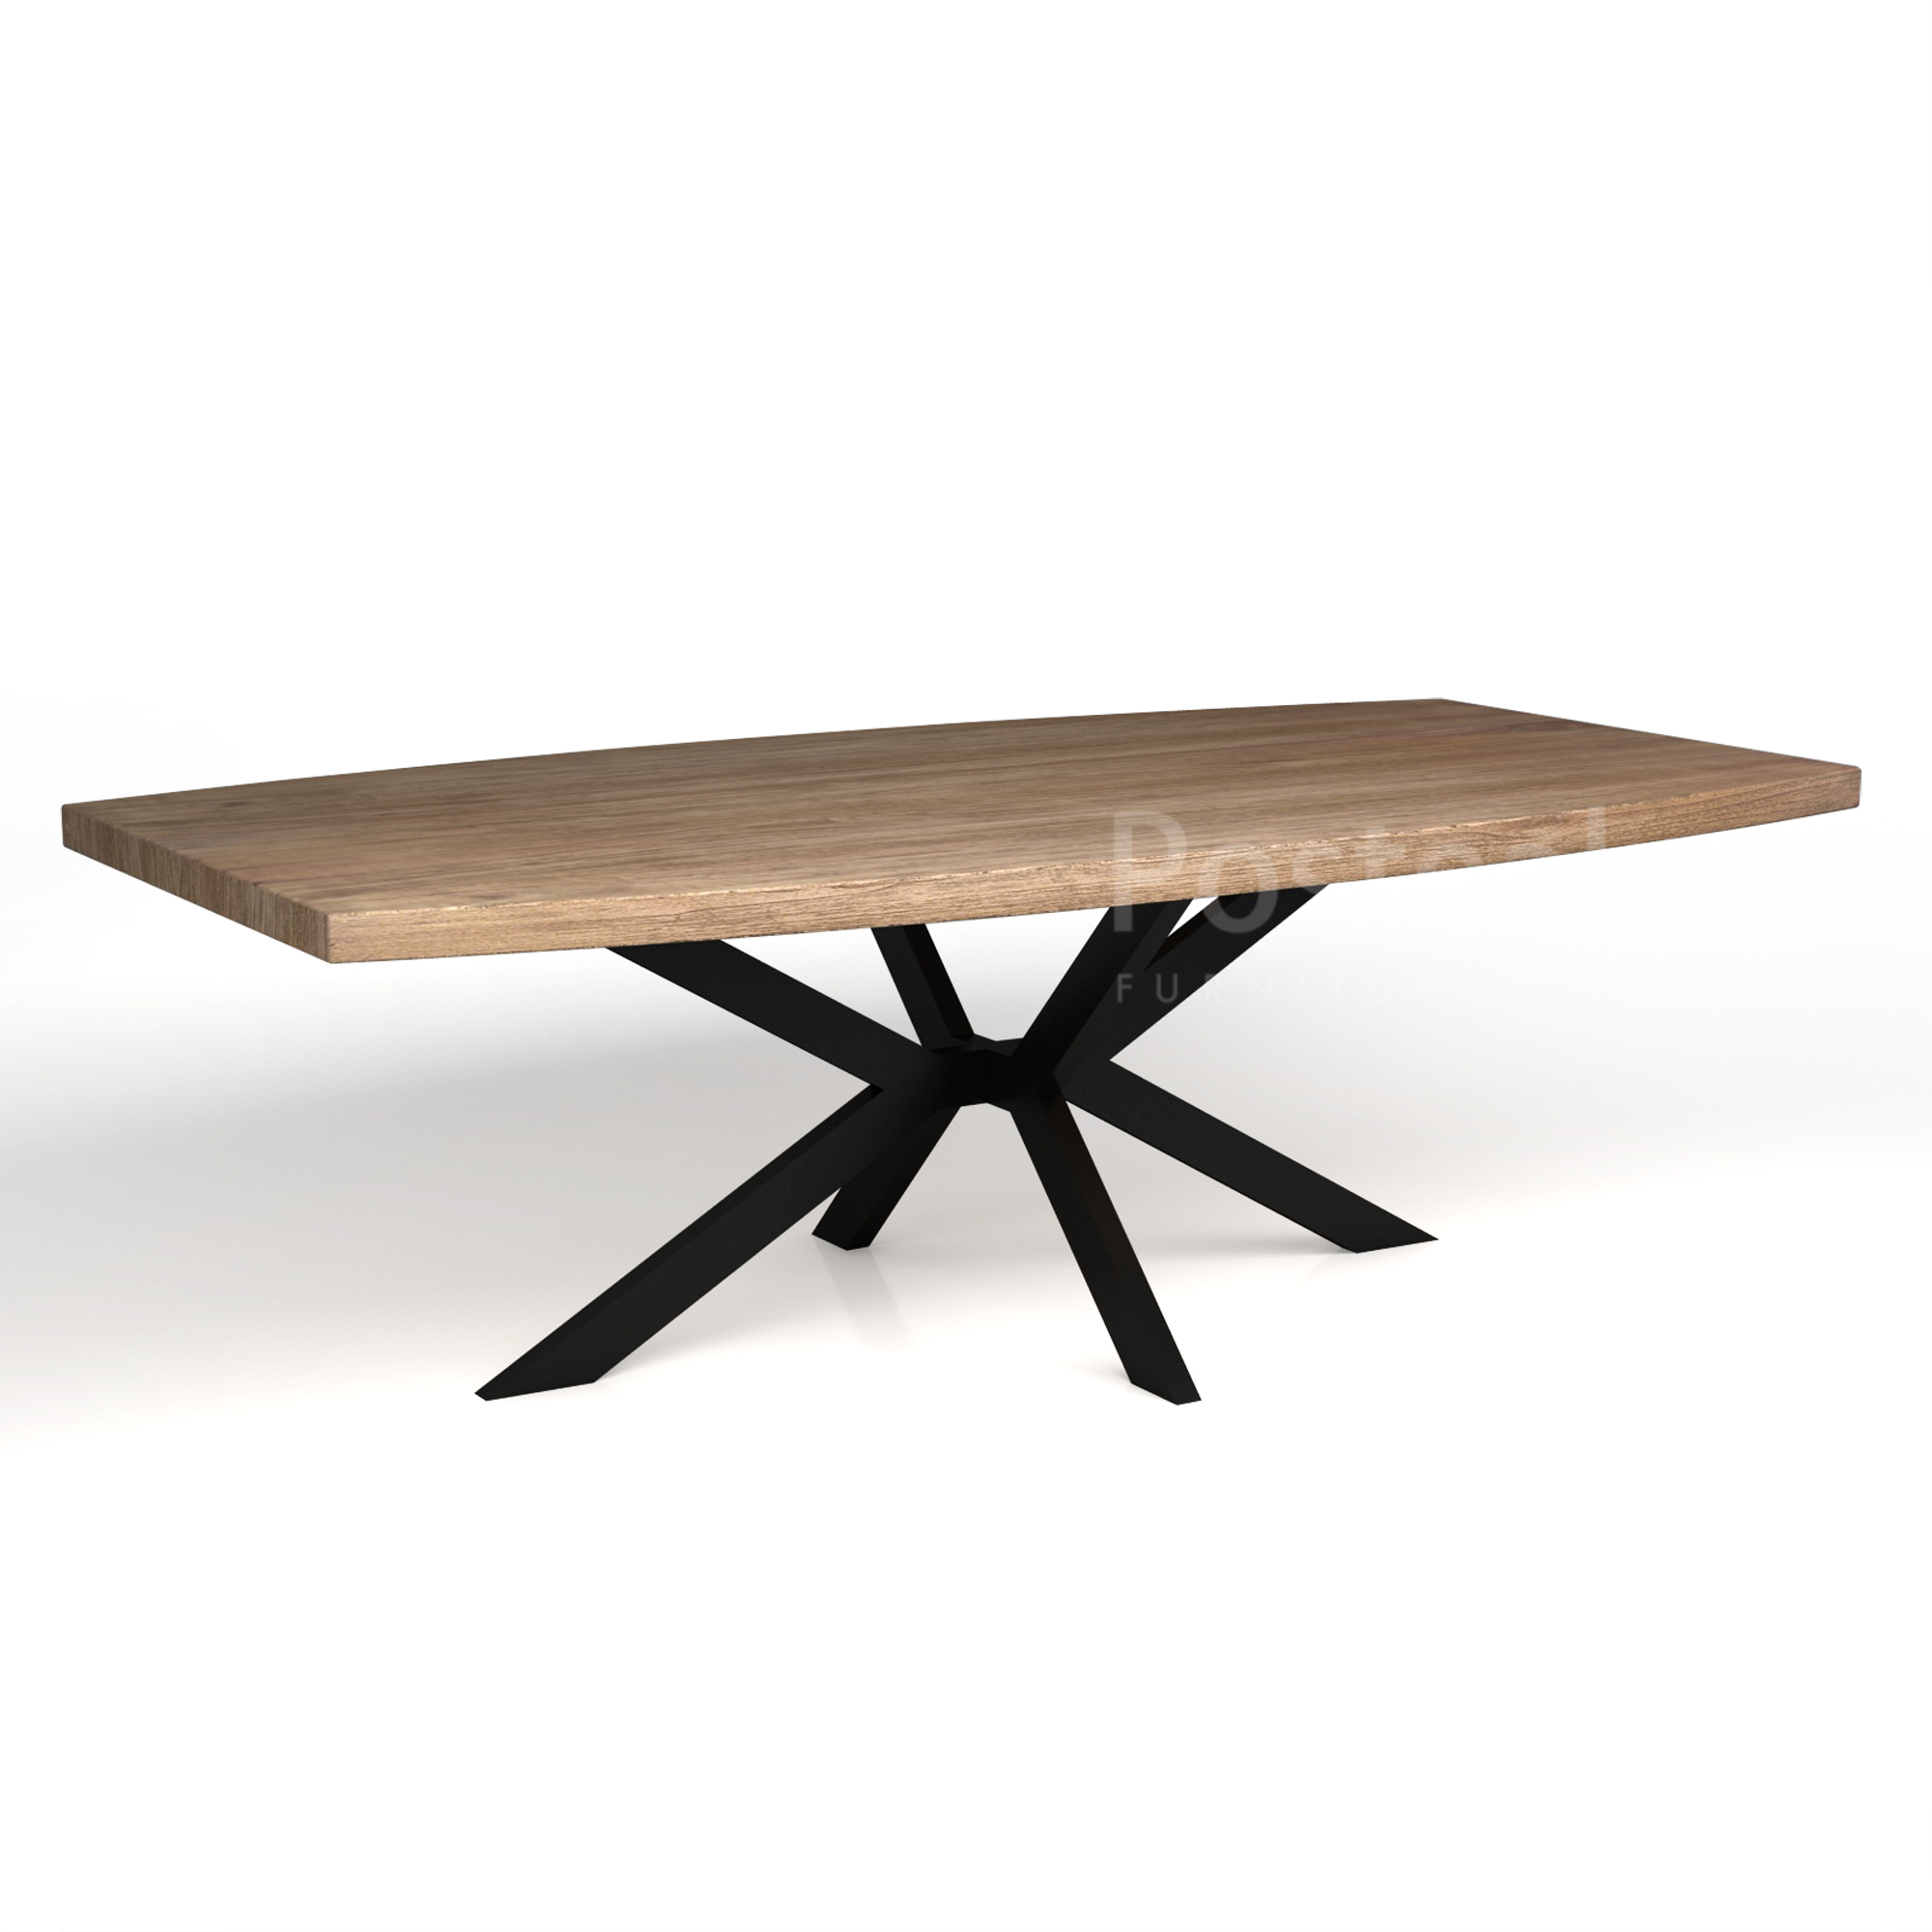 Prime Modern Dining Table Iron Cross Legs Posteak Furniture Squirreltailoven Fun Painted Chair Ideas Images Squirreltailovenorg